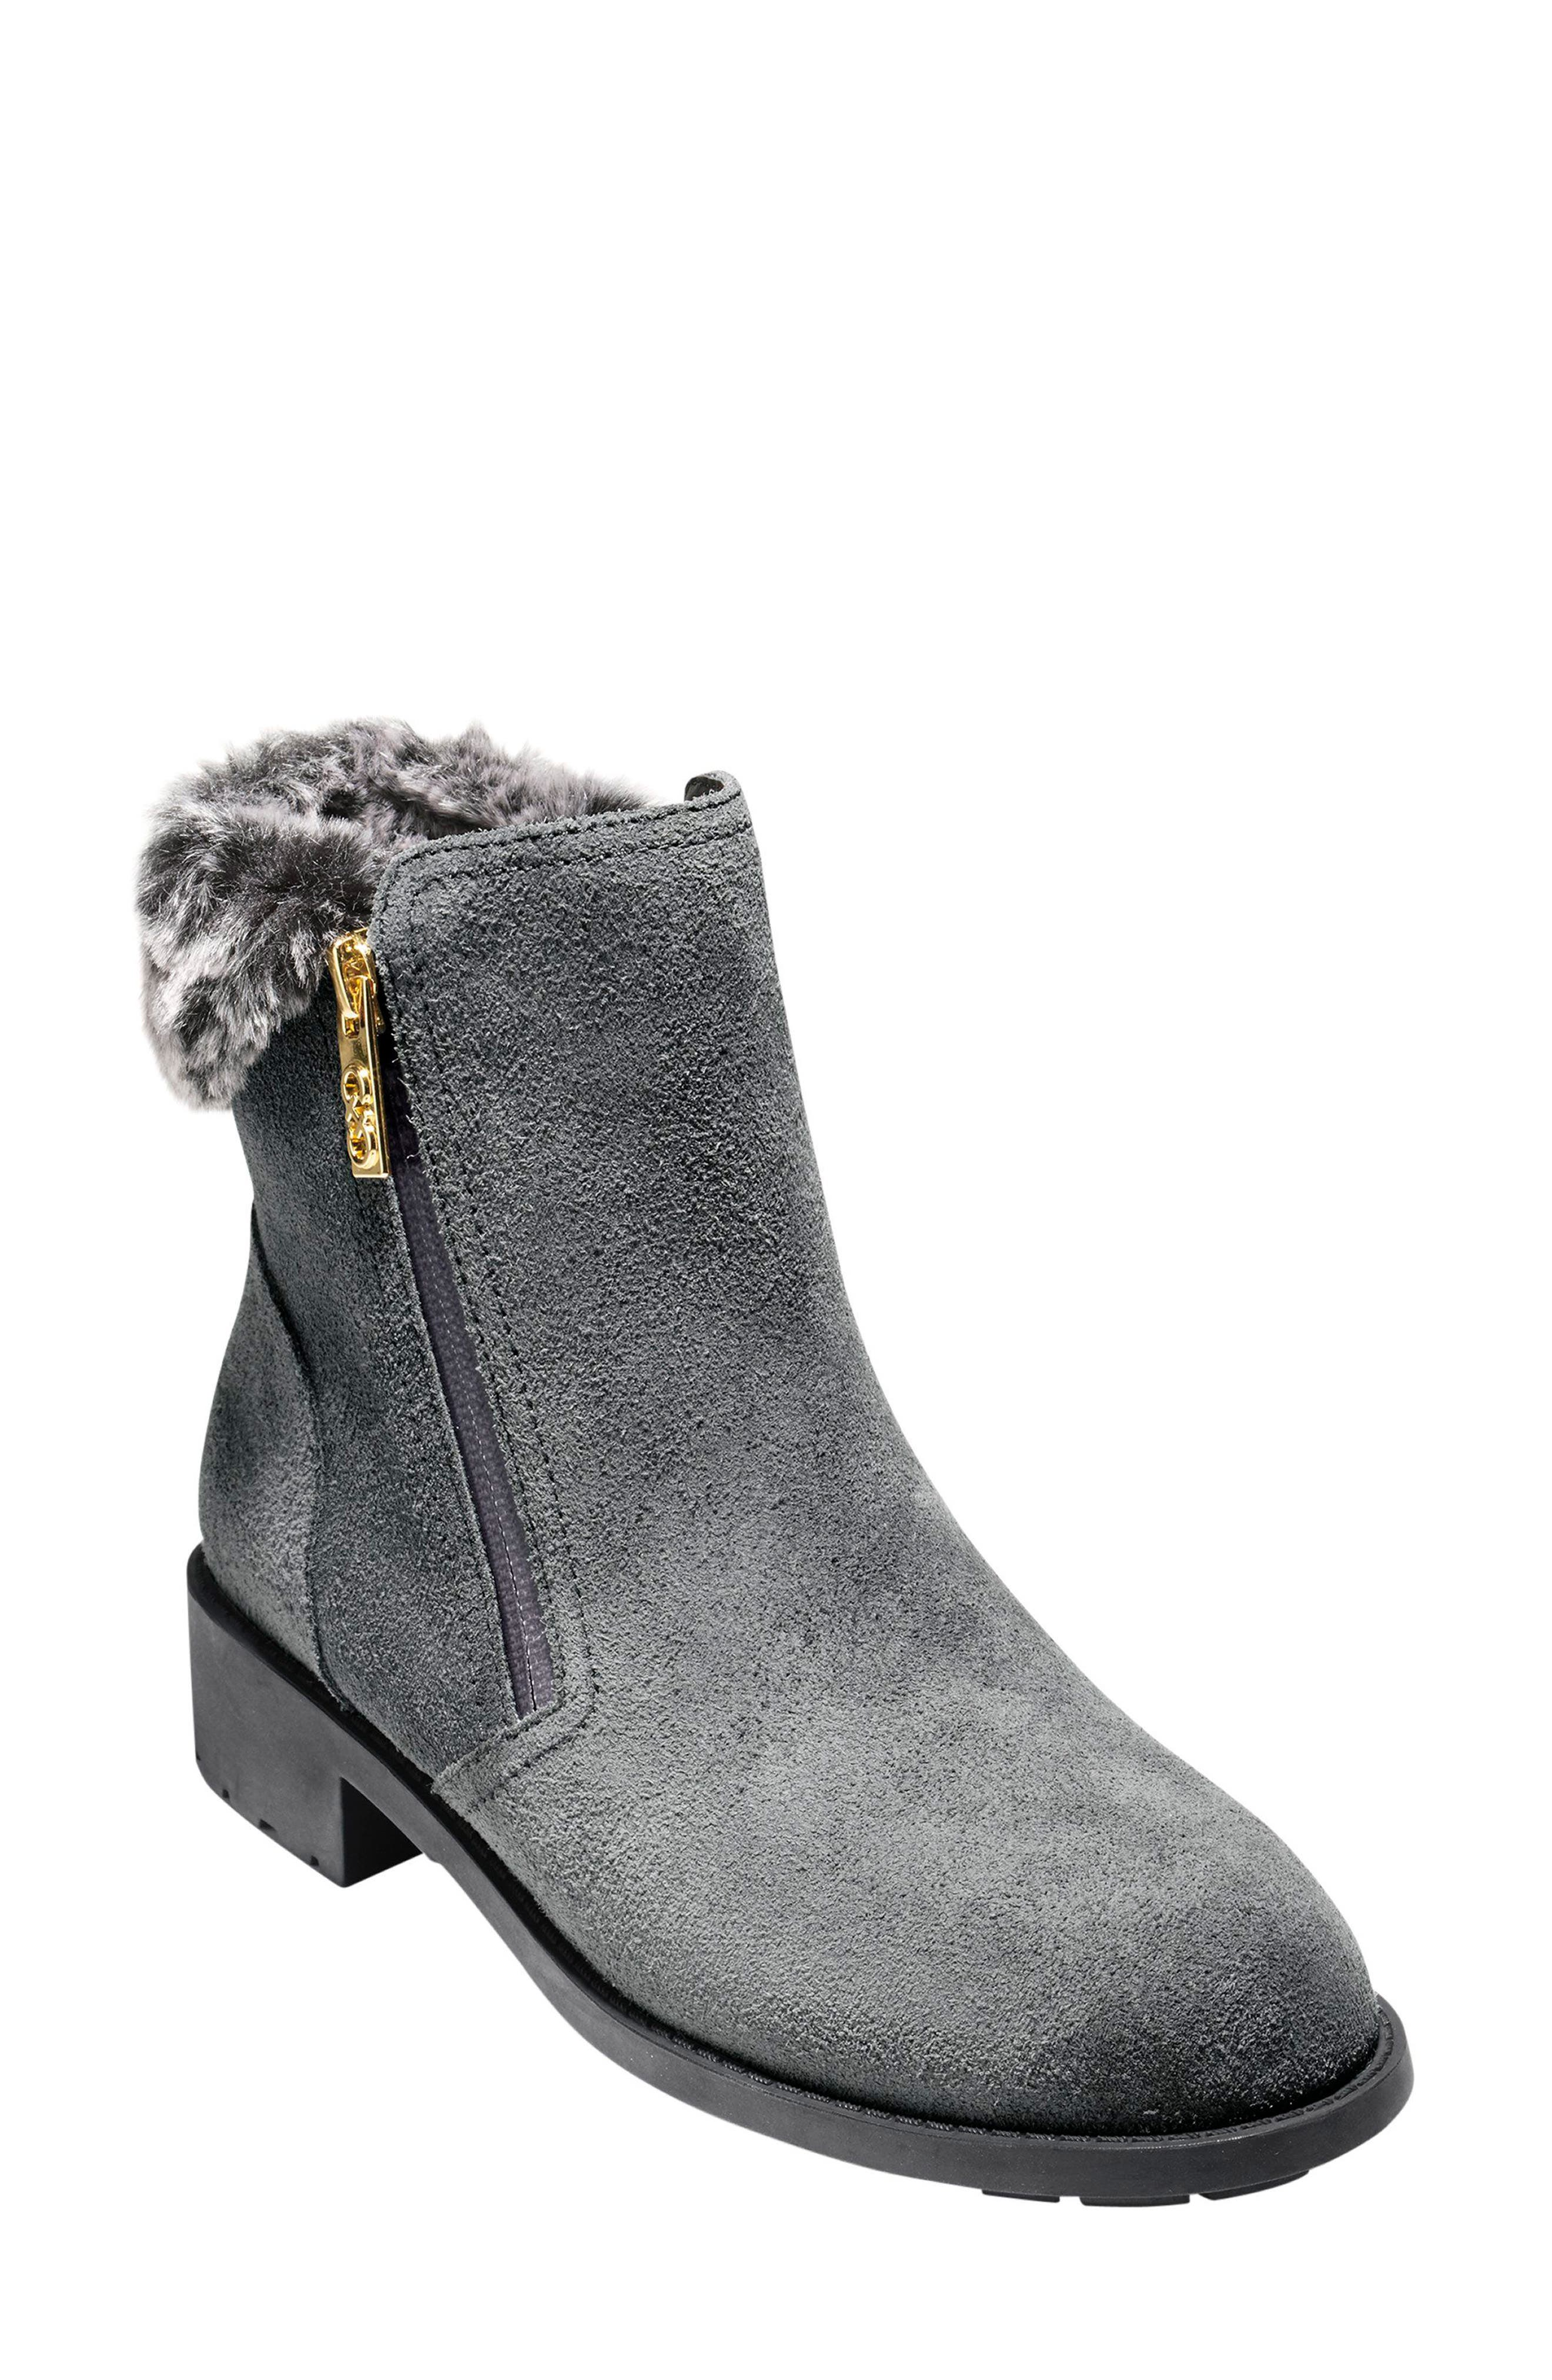 Quinney Waterproof Bootie with Faux Shearling Trim,                         Main,                         color, Castlerock Waterproof Suede